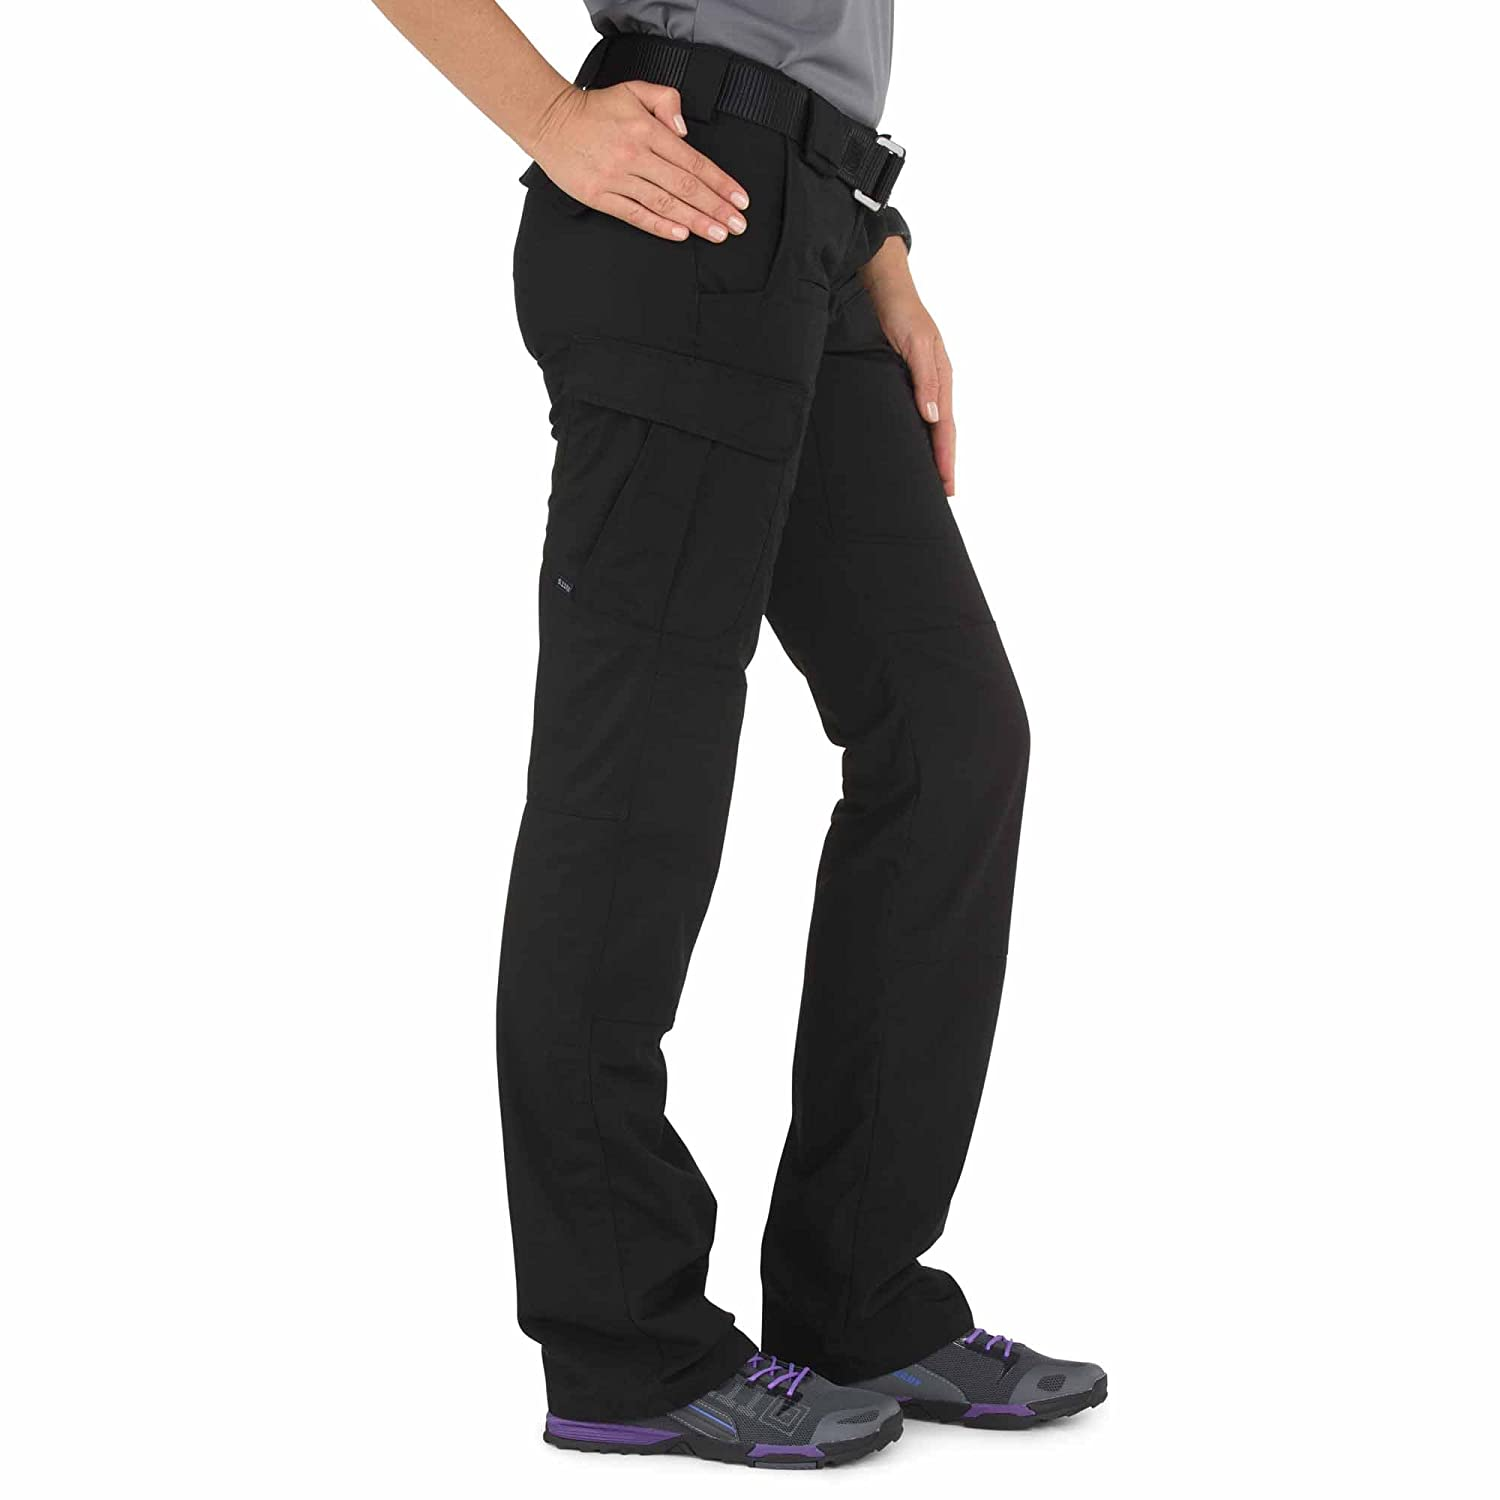 Style 64459 5.11 Tactical Womens Stryke Covert Cargo Pants Gusseted Construction Stretchable Fabric